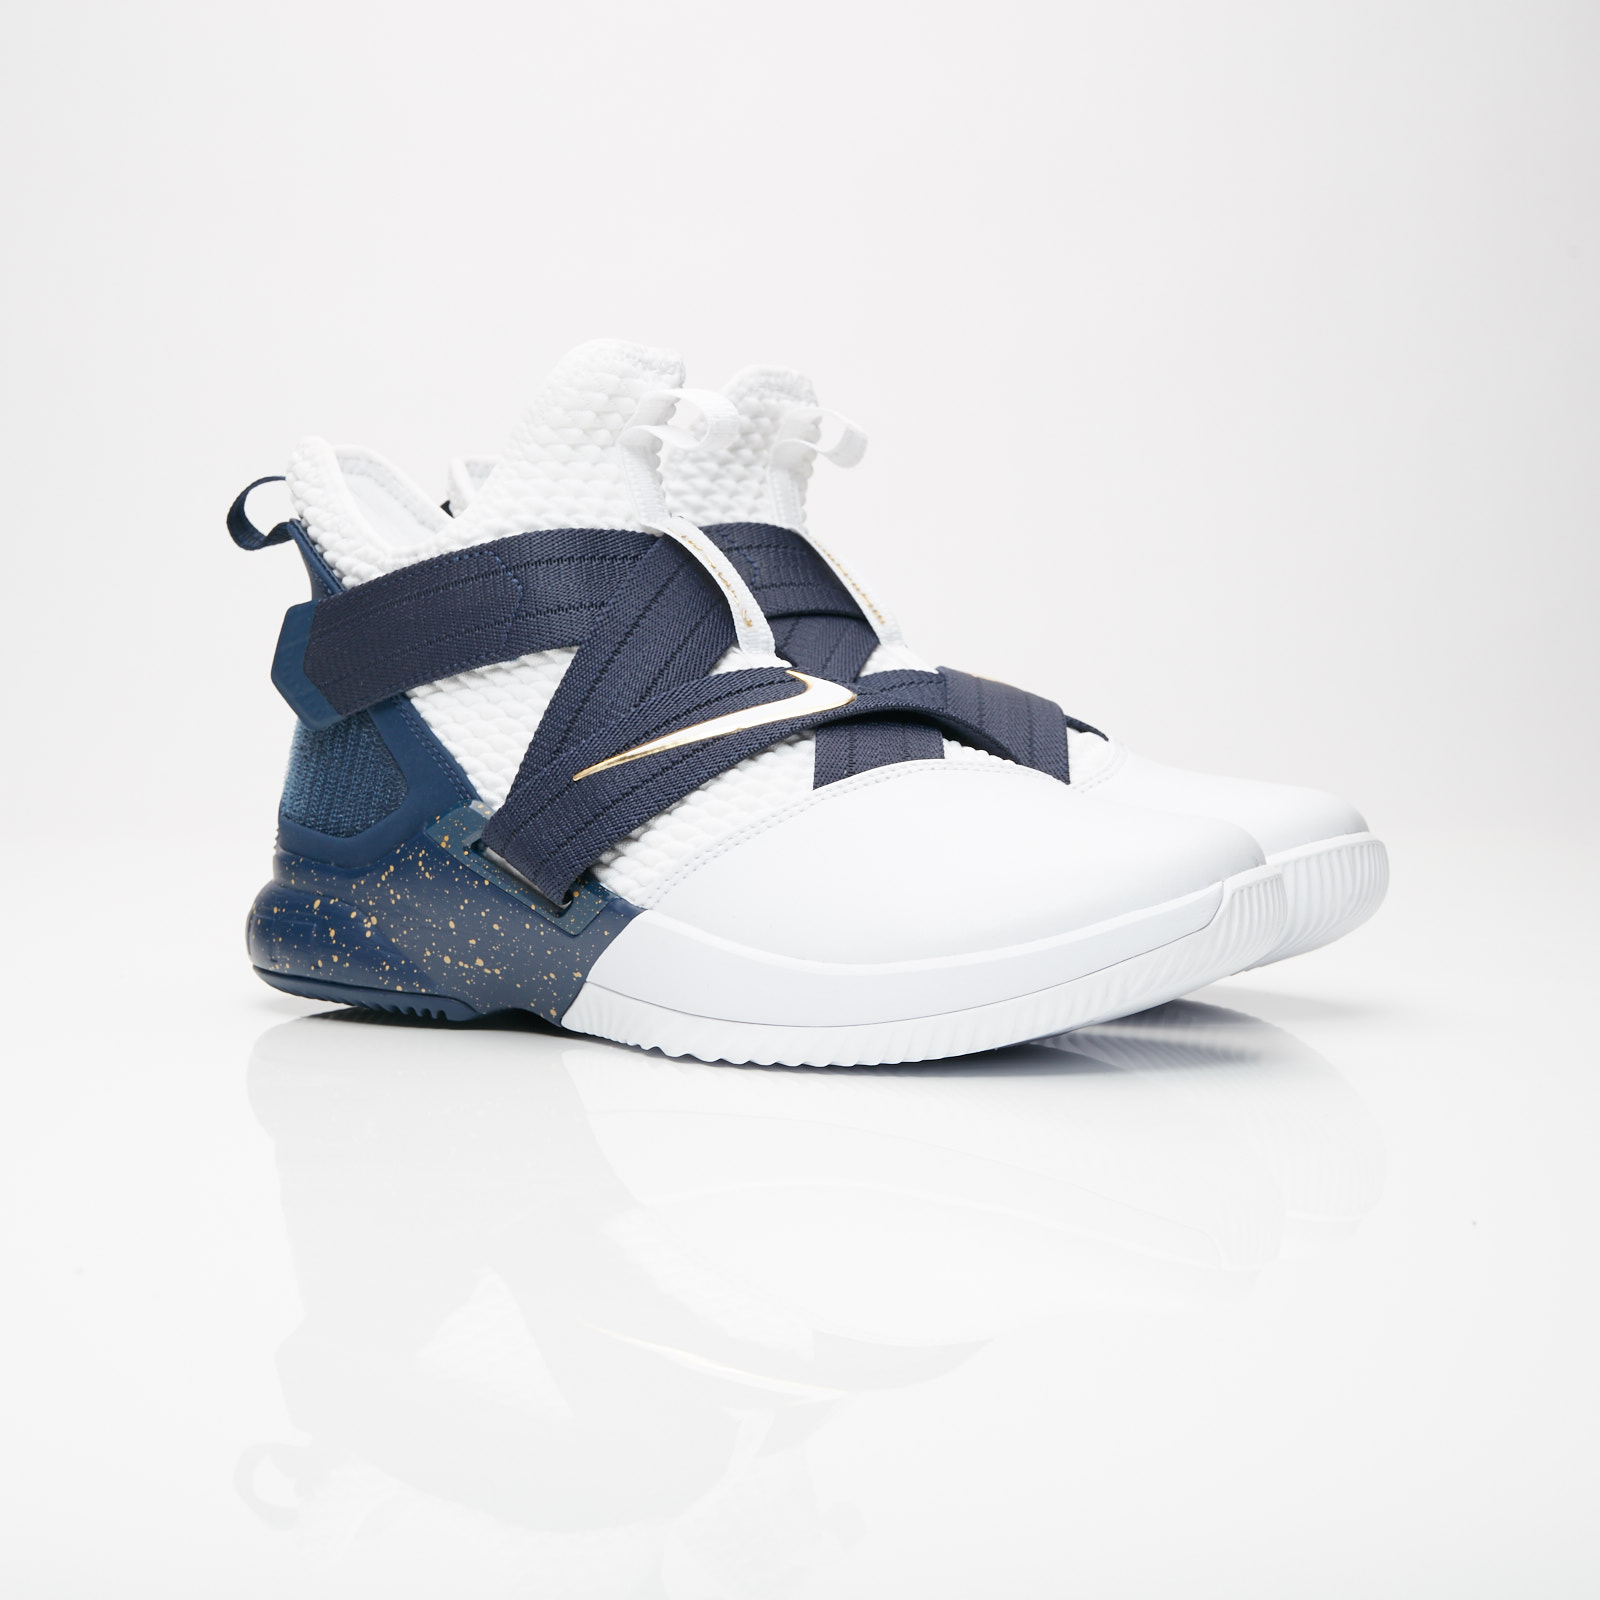 c7fb1655d952a Nike Lebron Soldier XII SFG - Ao4054-100 - Sneakersnstuff